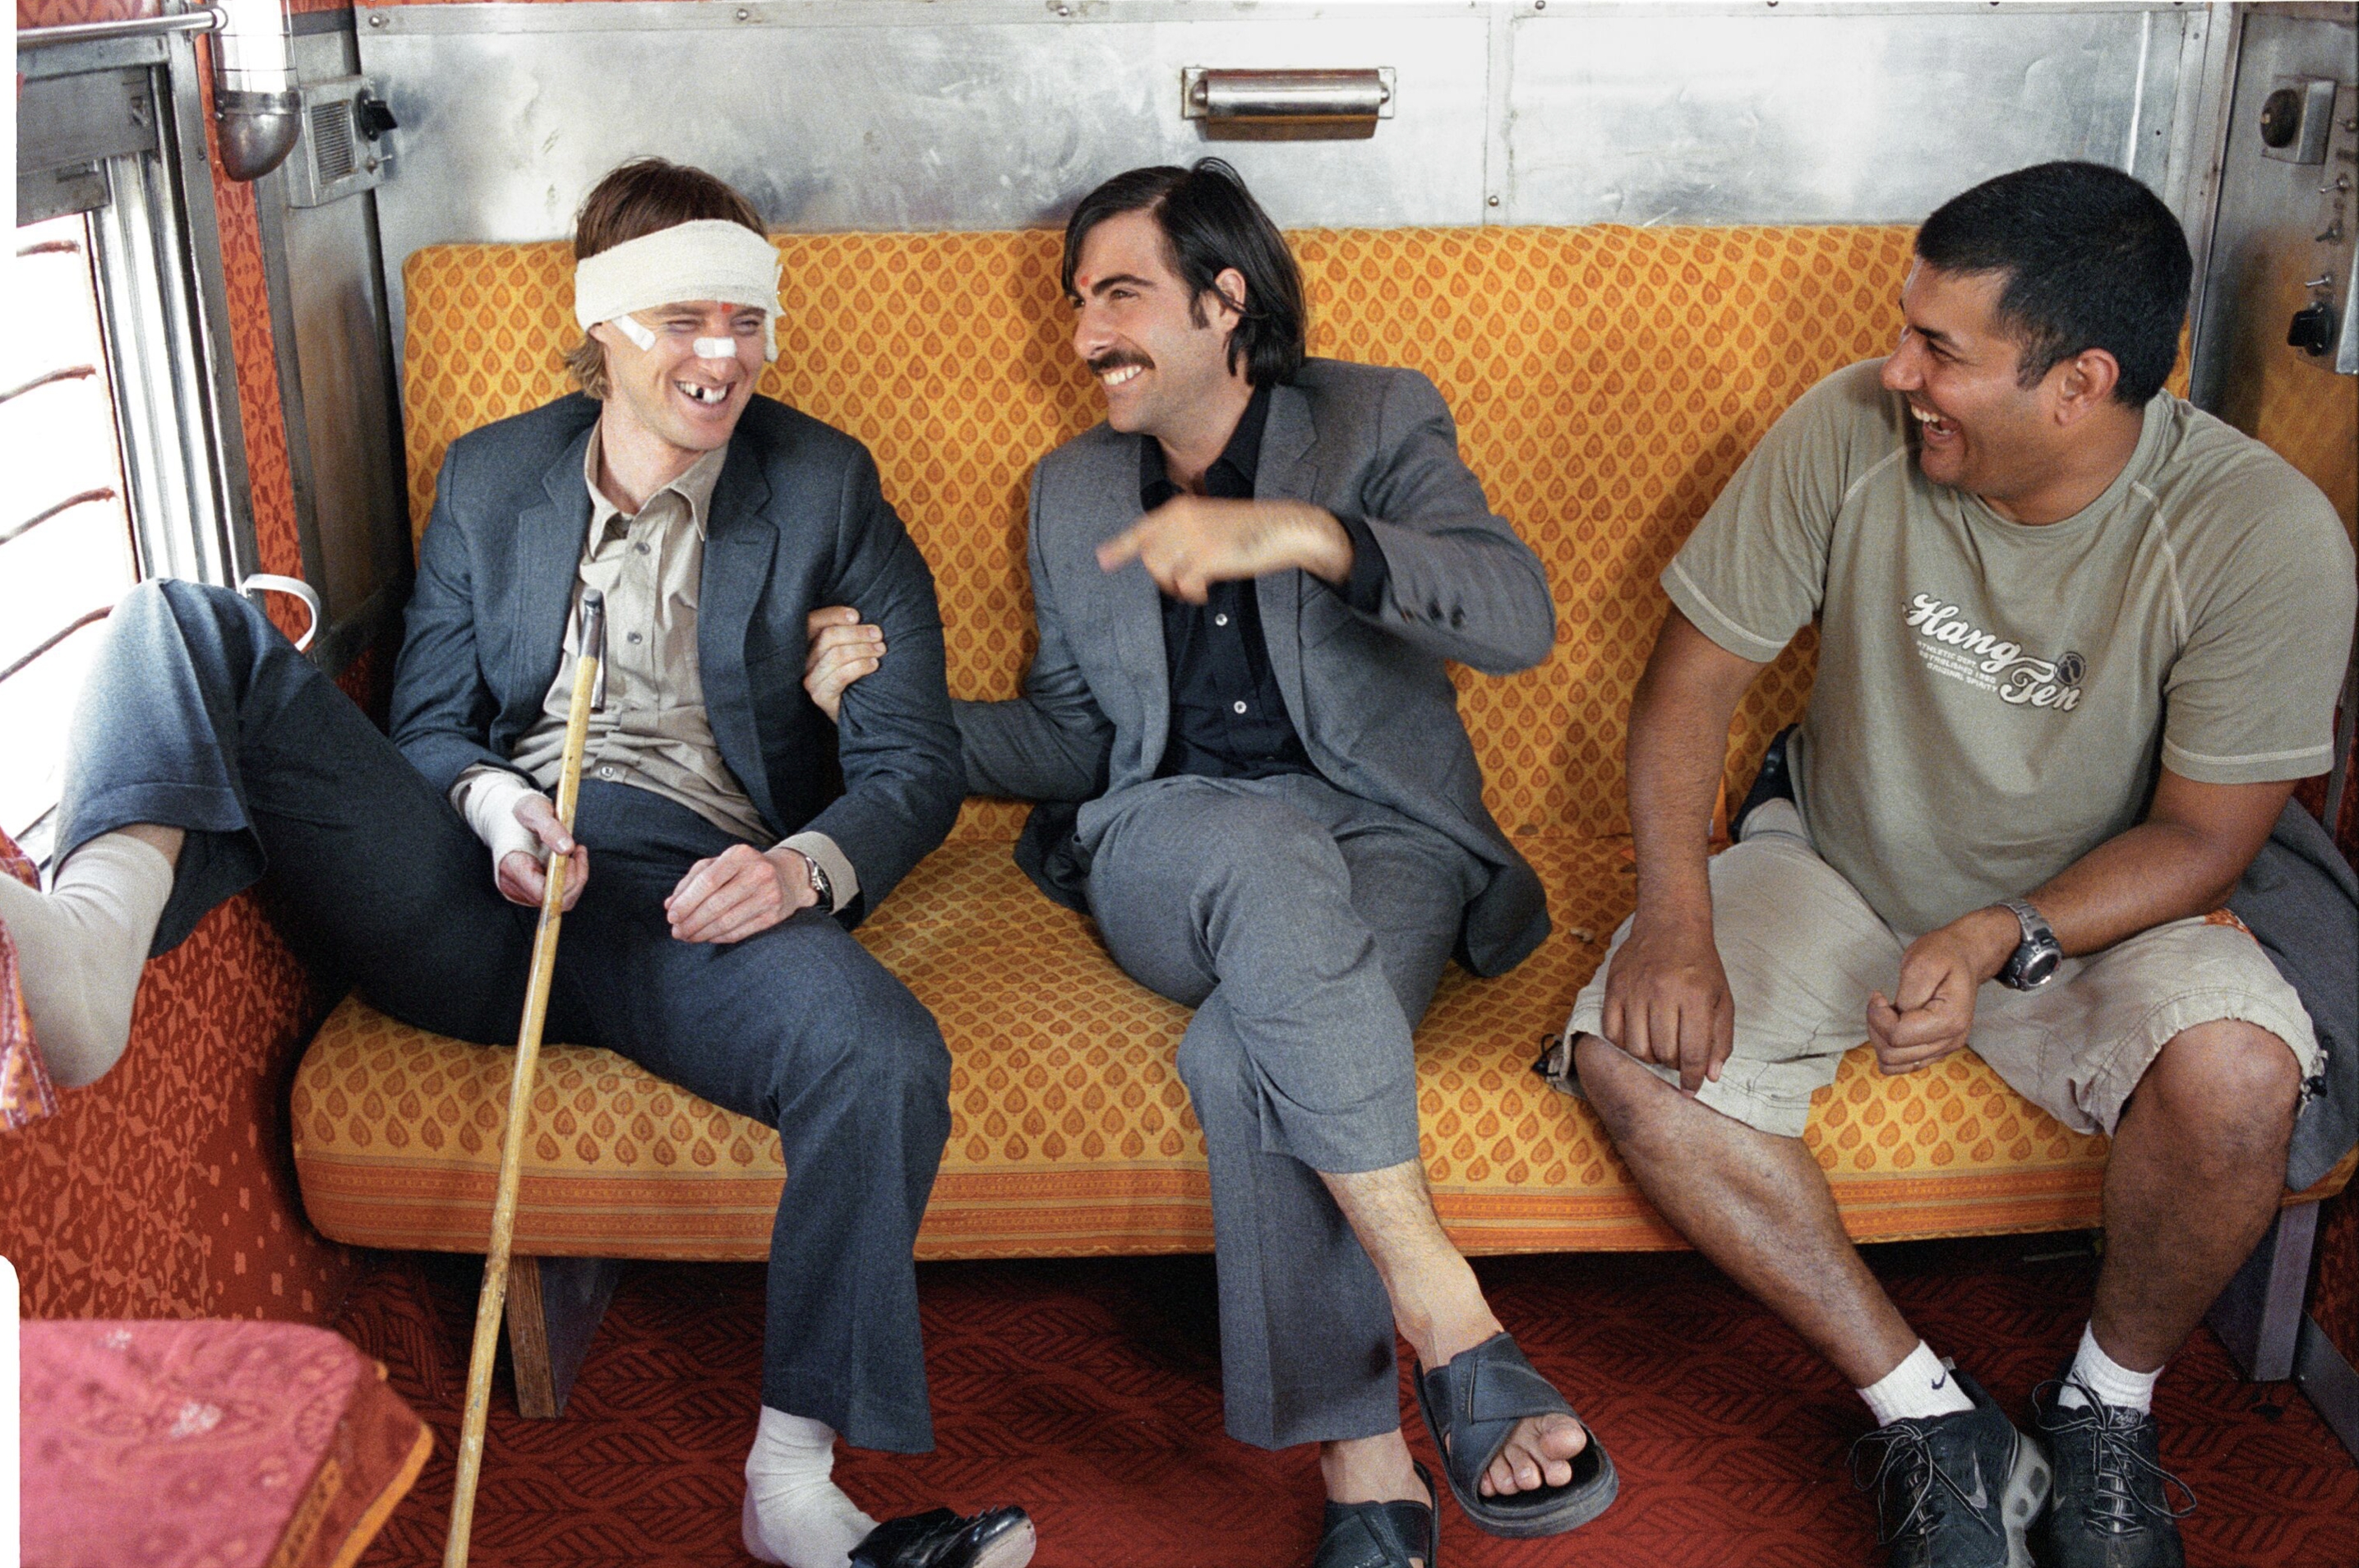 Owen Wilson and Jason Schwartzman joking on the set with cameraman, Sami Songay, Rajasthan, India, 2007